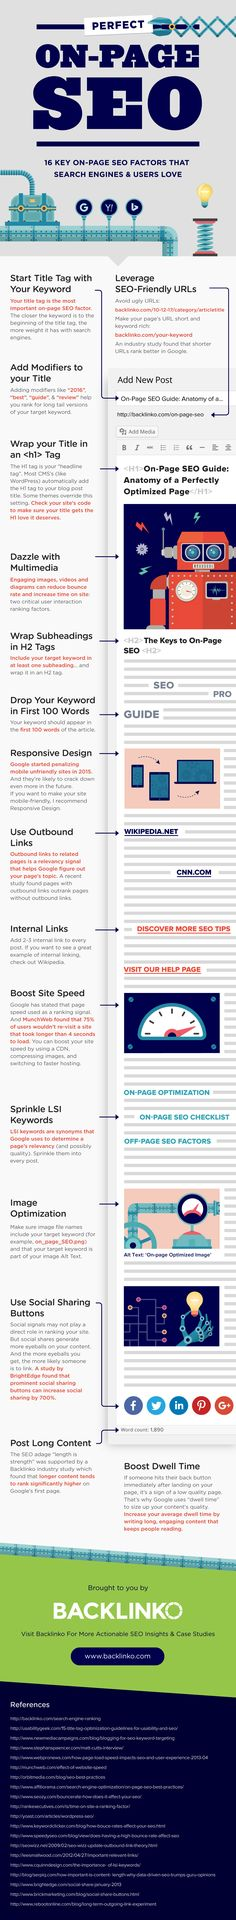 16 Key On-Page SEO Factors That Search Engines And Users Love [Infographic] | Social Media Today